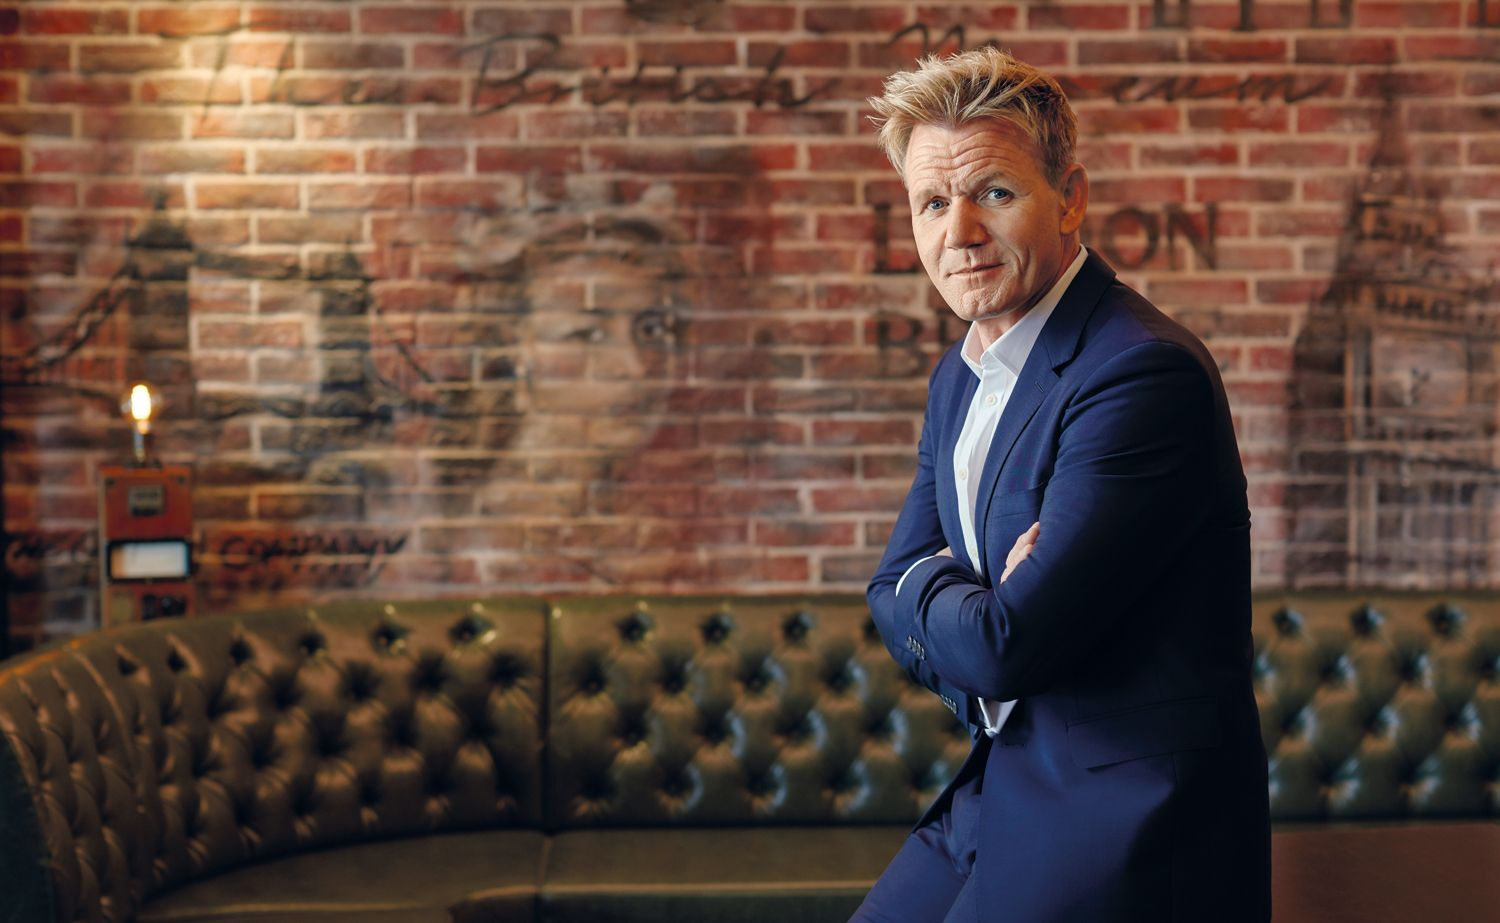 Head of the House: Gordon Ramsay